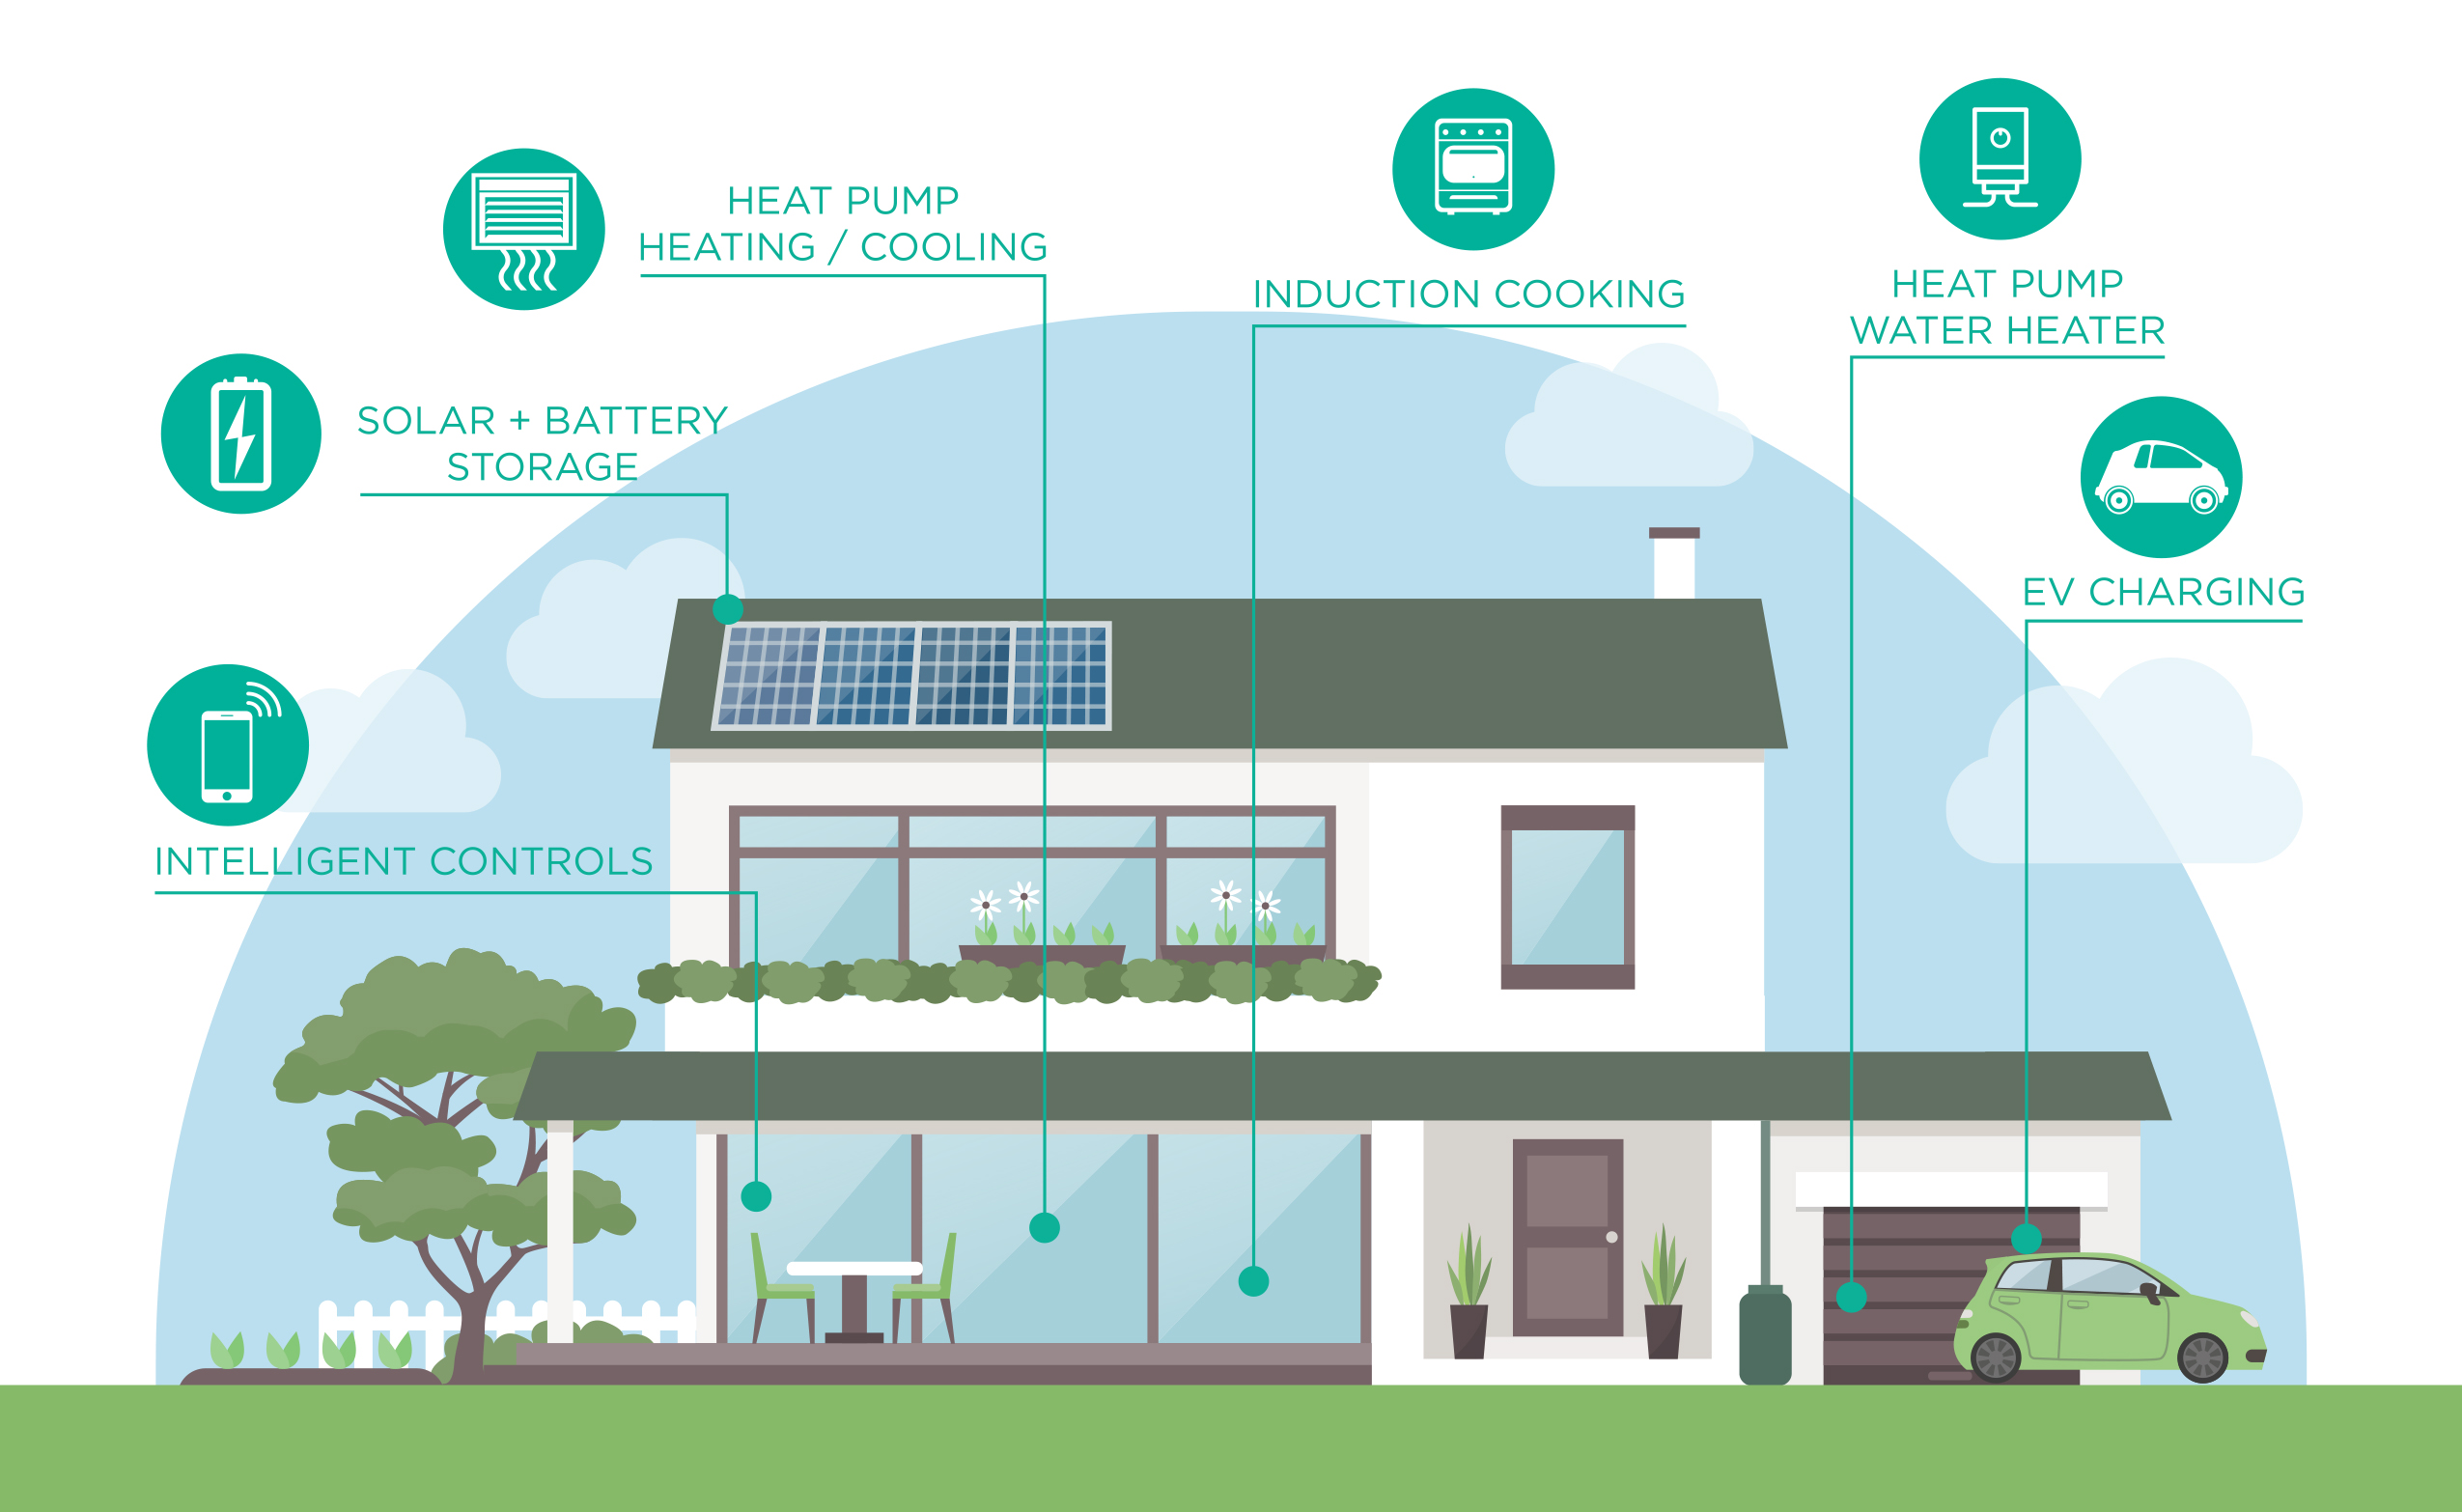 A graphic of a house with intelligent controls, solar + battery storage, heat pump heating / cooling, induction cooking, heat pump water heater, EV Charging